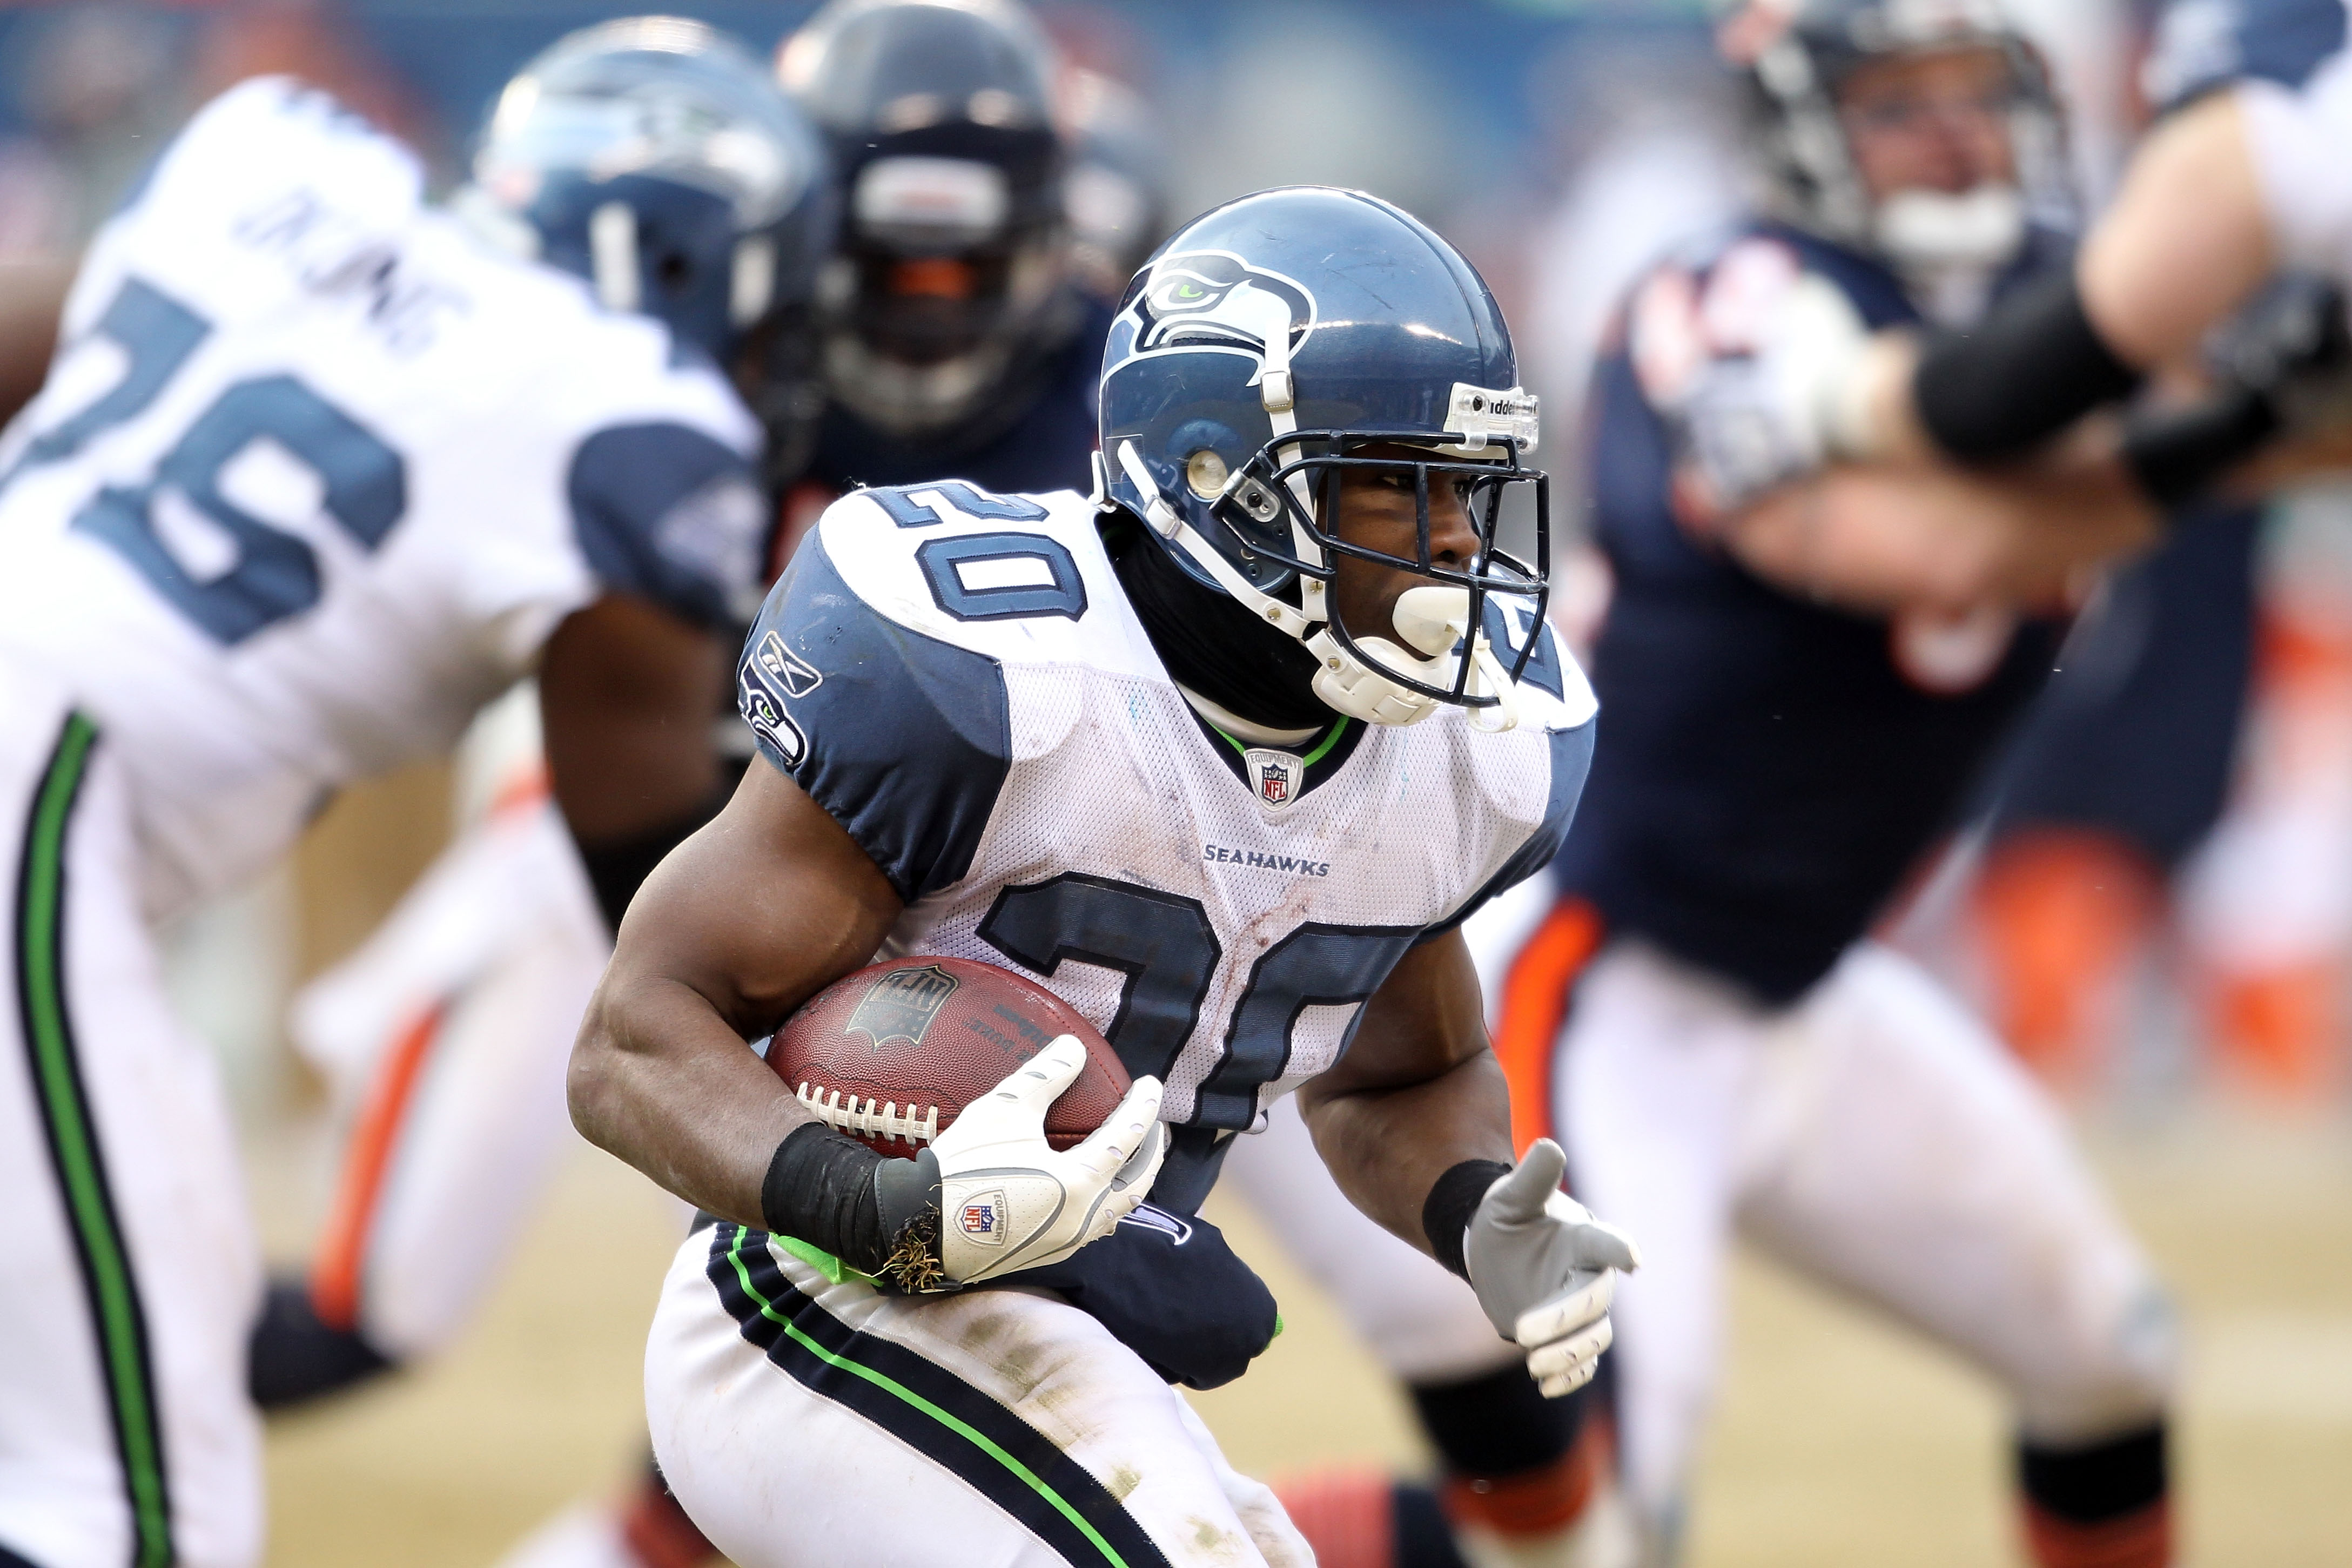 CHICAGO, IL - JANUARY 16:  Justin Forsett #20 of the Seattle Seahawks carries the ball against the Chicago Bears in the 2011 NFC divisional playoff game at Soldier Field on January 16, 2011 in Chicago, Illinois.  (Photo by Andy Lyons/Getty Images)